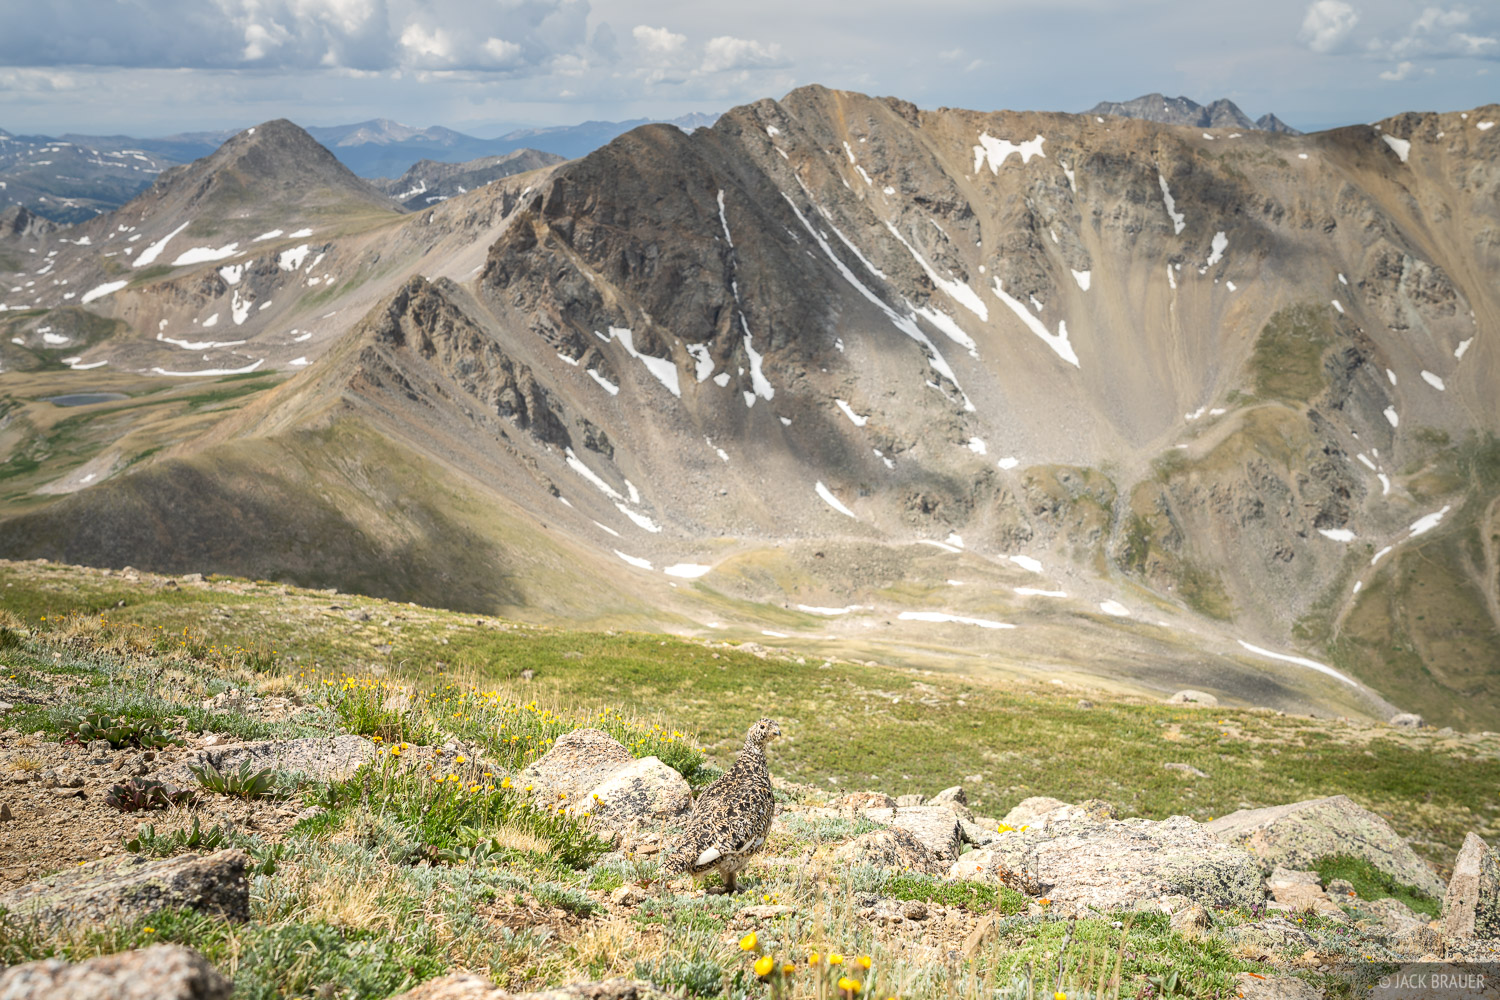 Collegiate Peaks Wilderness, Colorado, Mount Belford, Sawatch Range, ptarmigan, 14ers, Missouri Mountain, photo